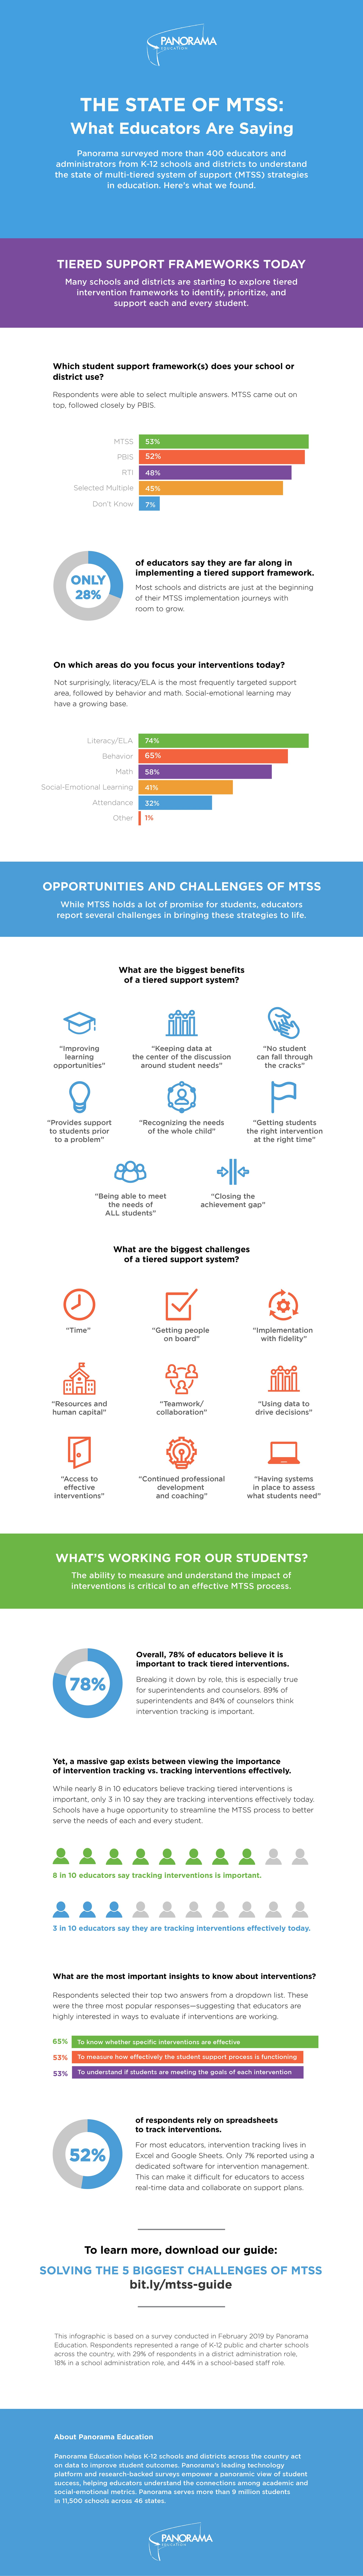 State of MTSS in Education: Infographic